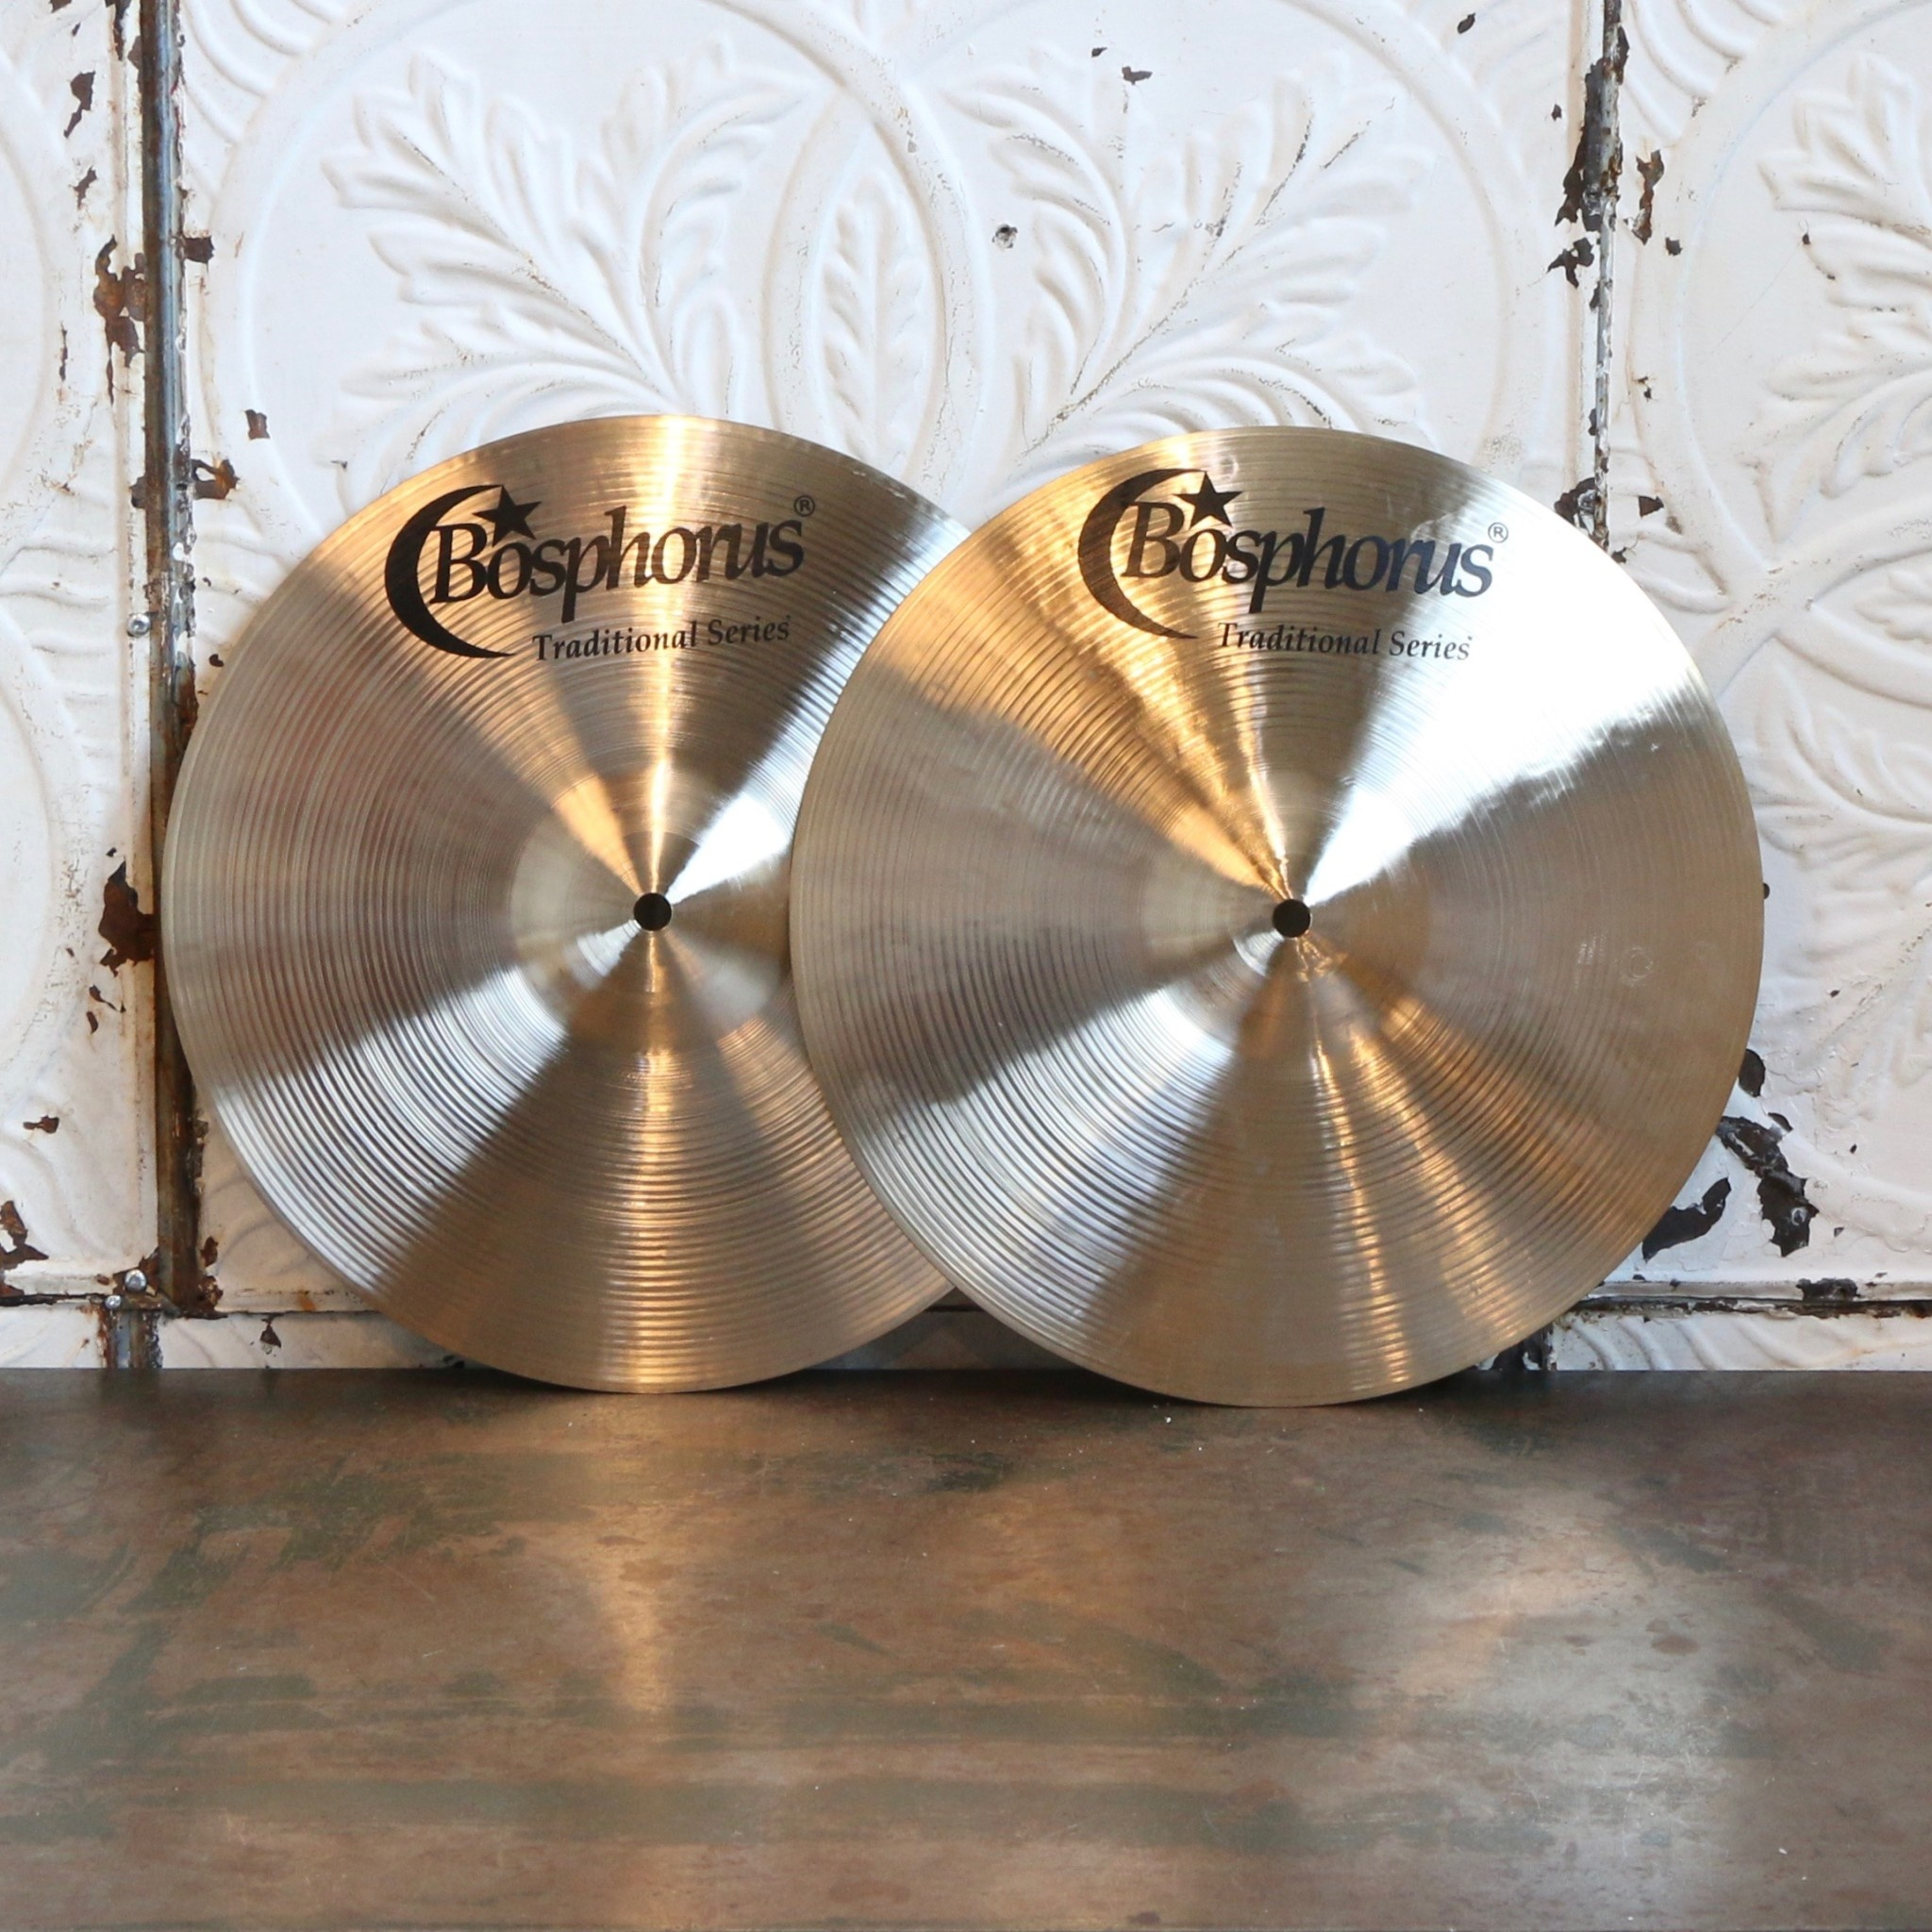 "Bosphorus BOSPHORUS 13"" TRADITIONAL HI-HATS BRIGHT"